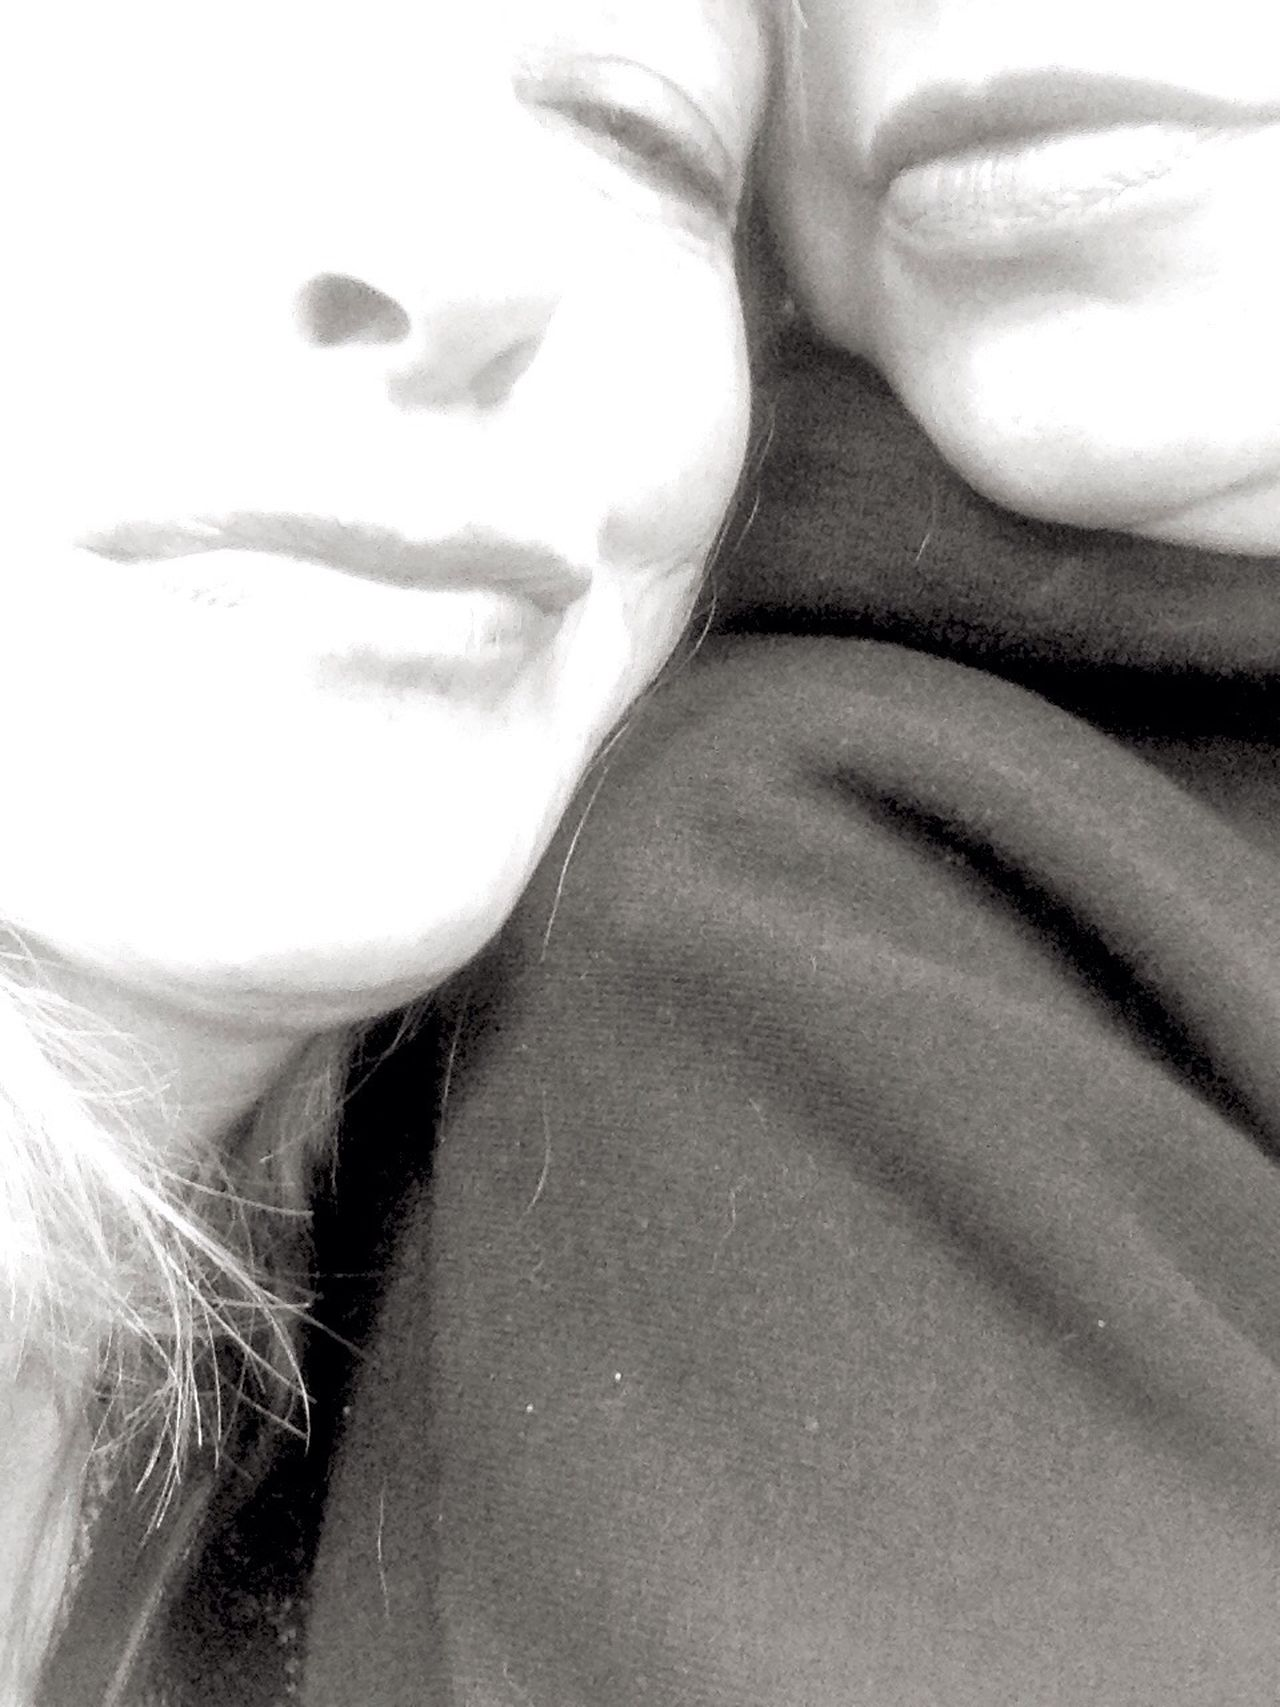 Maximum Closeness Real People Real Friendship ∞ Blackandwhite Photography Close Up Photography